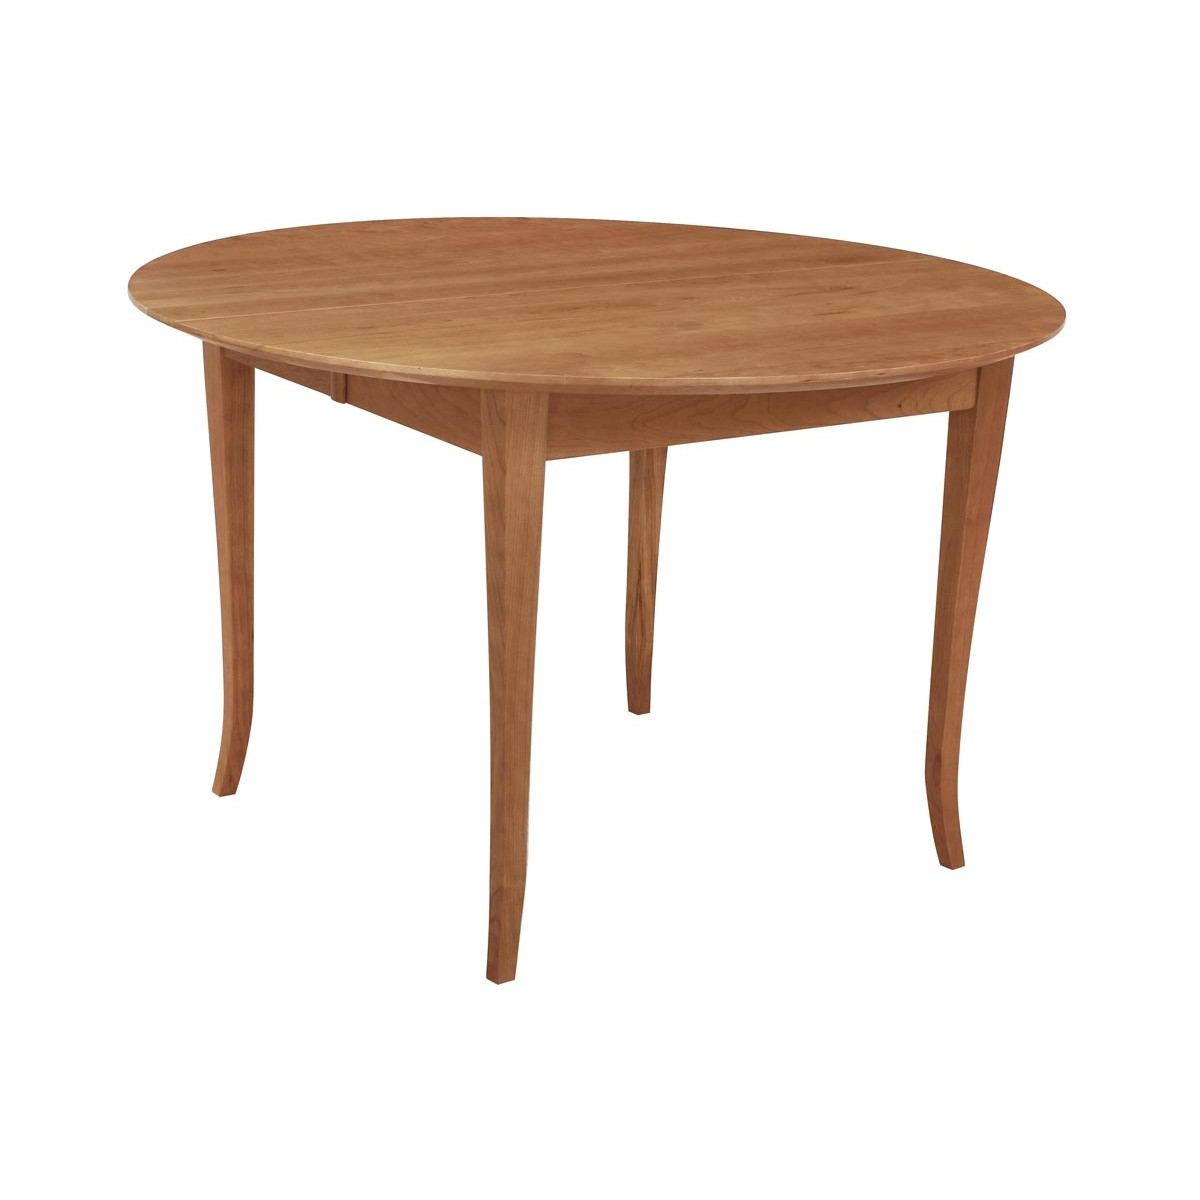 Lyndon flare leg table from 103500 by lyndon danco modern lyndon flare leg table watchthetrailerfo